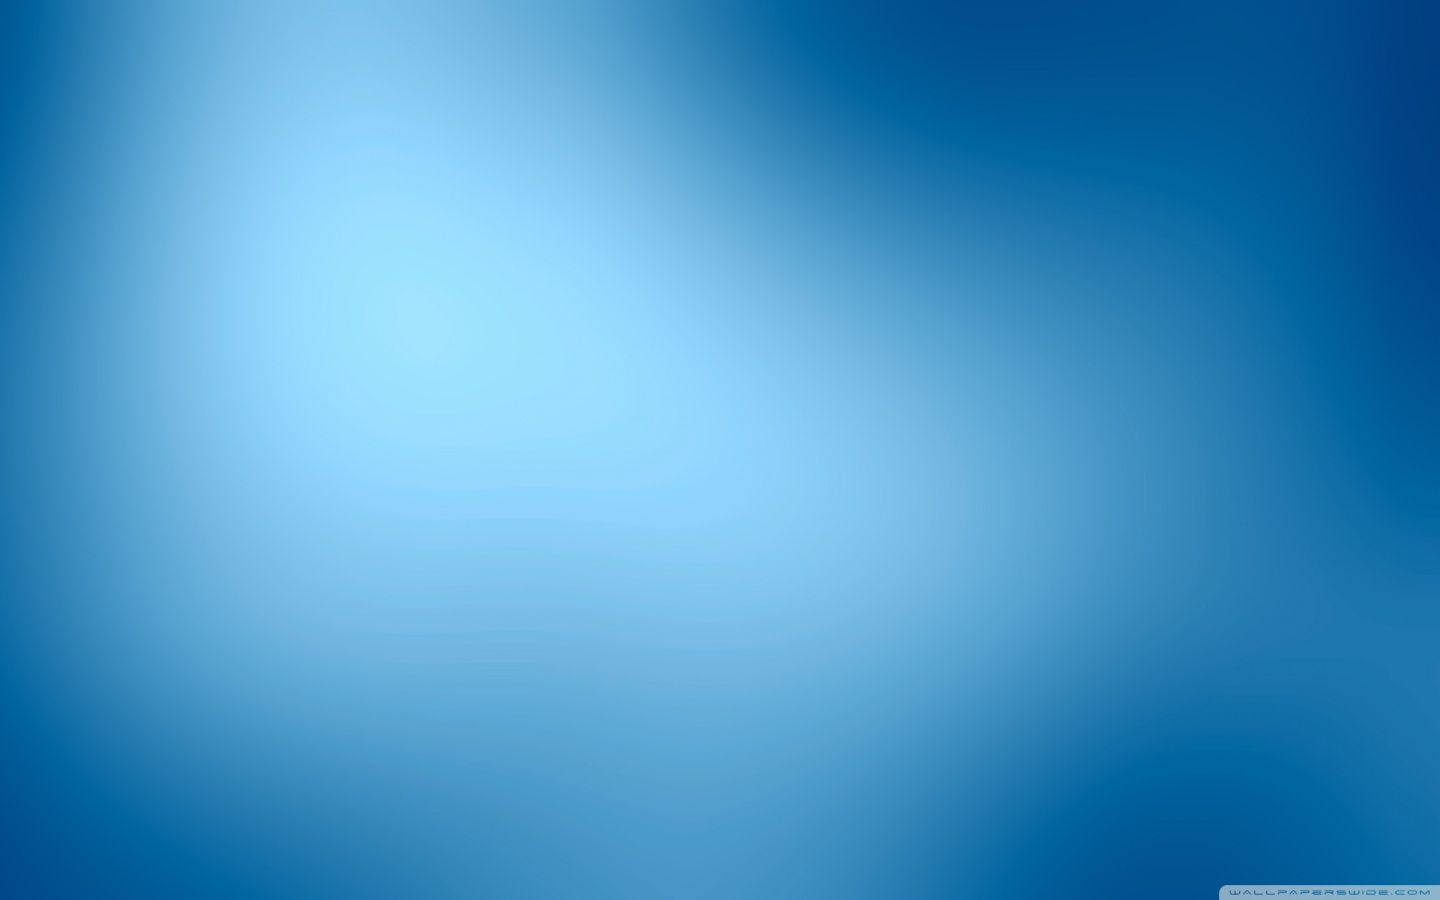 simple blue background hd desktop wallpaper : high definition | epic